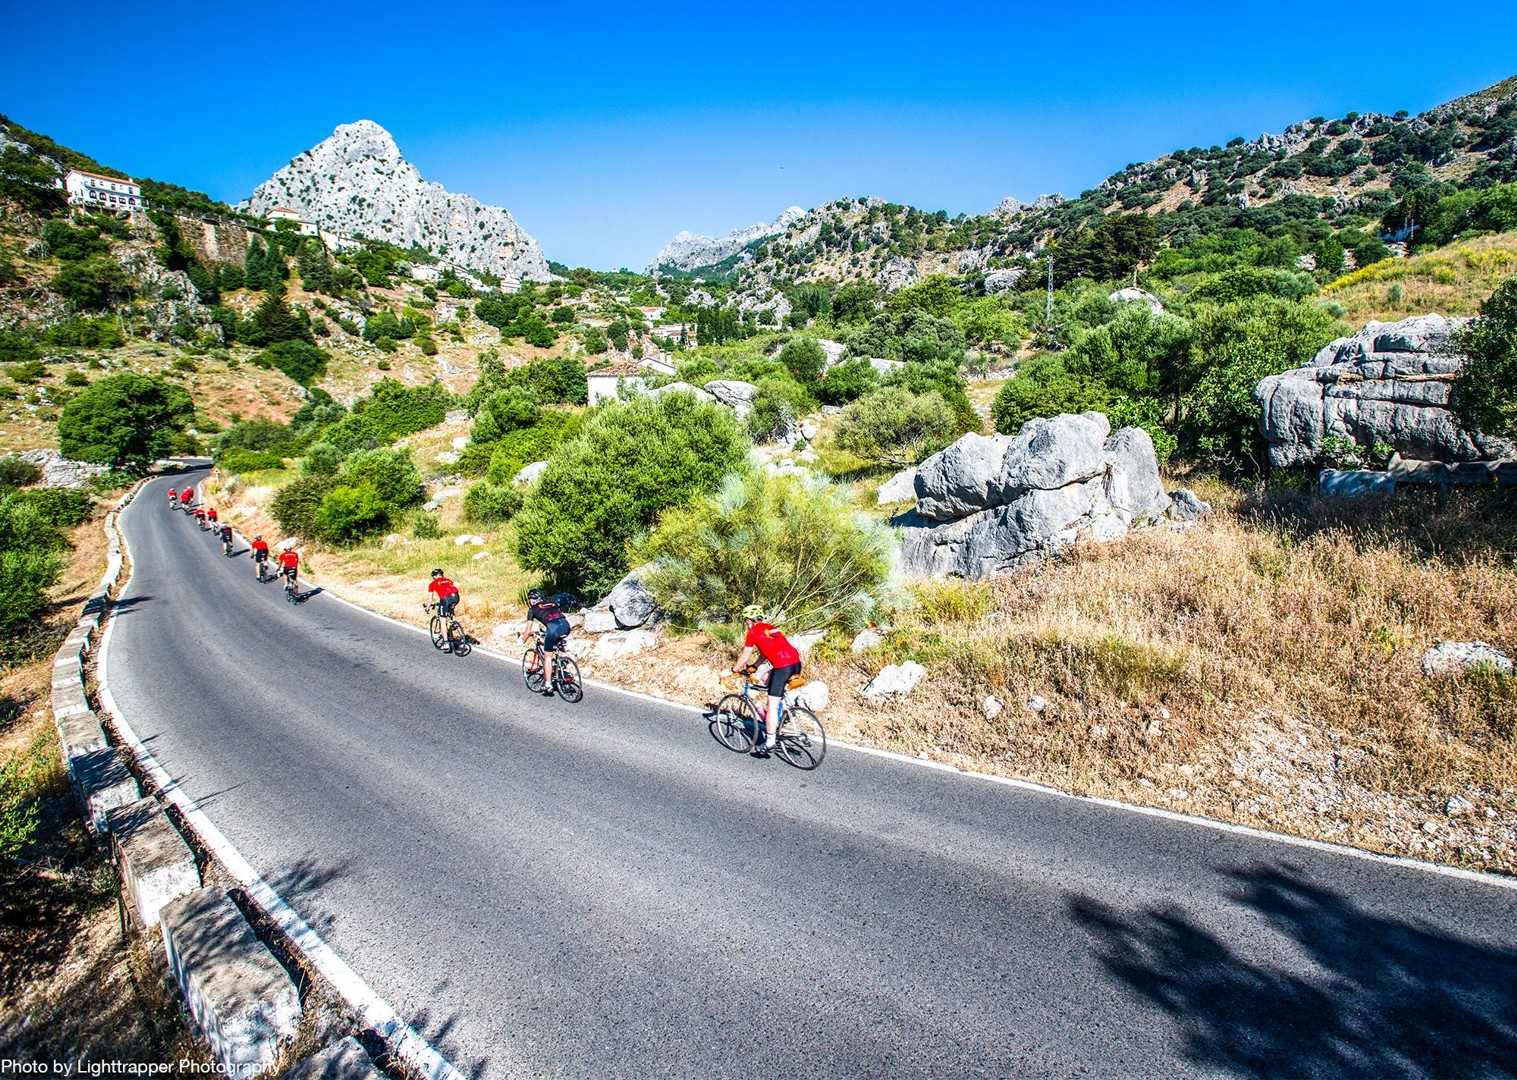 spain-cycling-guided-holiday-riding-from-north-to-south-andalucia.jpg - Spain - Basque Country to Andalucia - North to South (16 Days) - Guided Road Cycling Holiday - Road Cycling